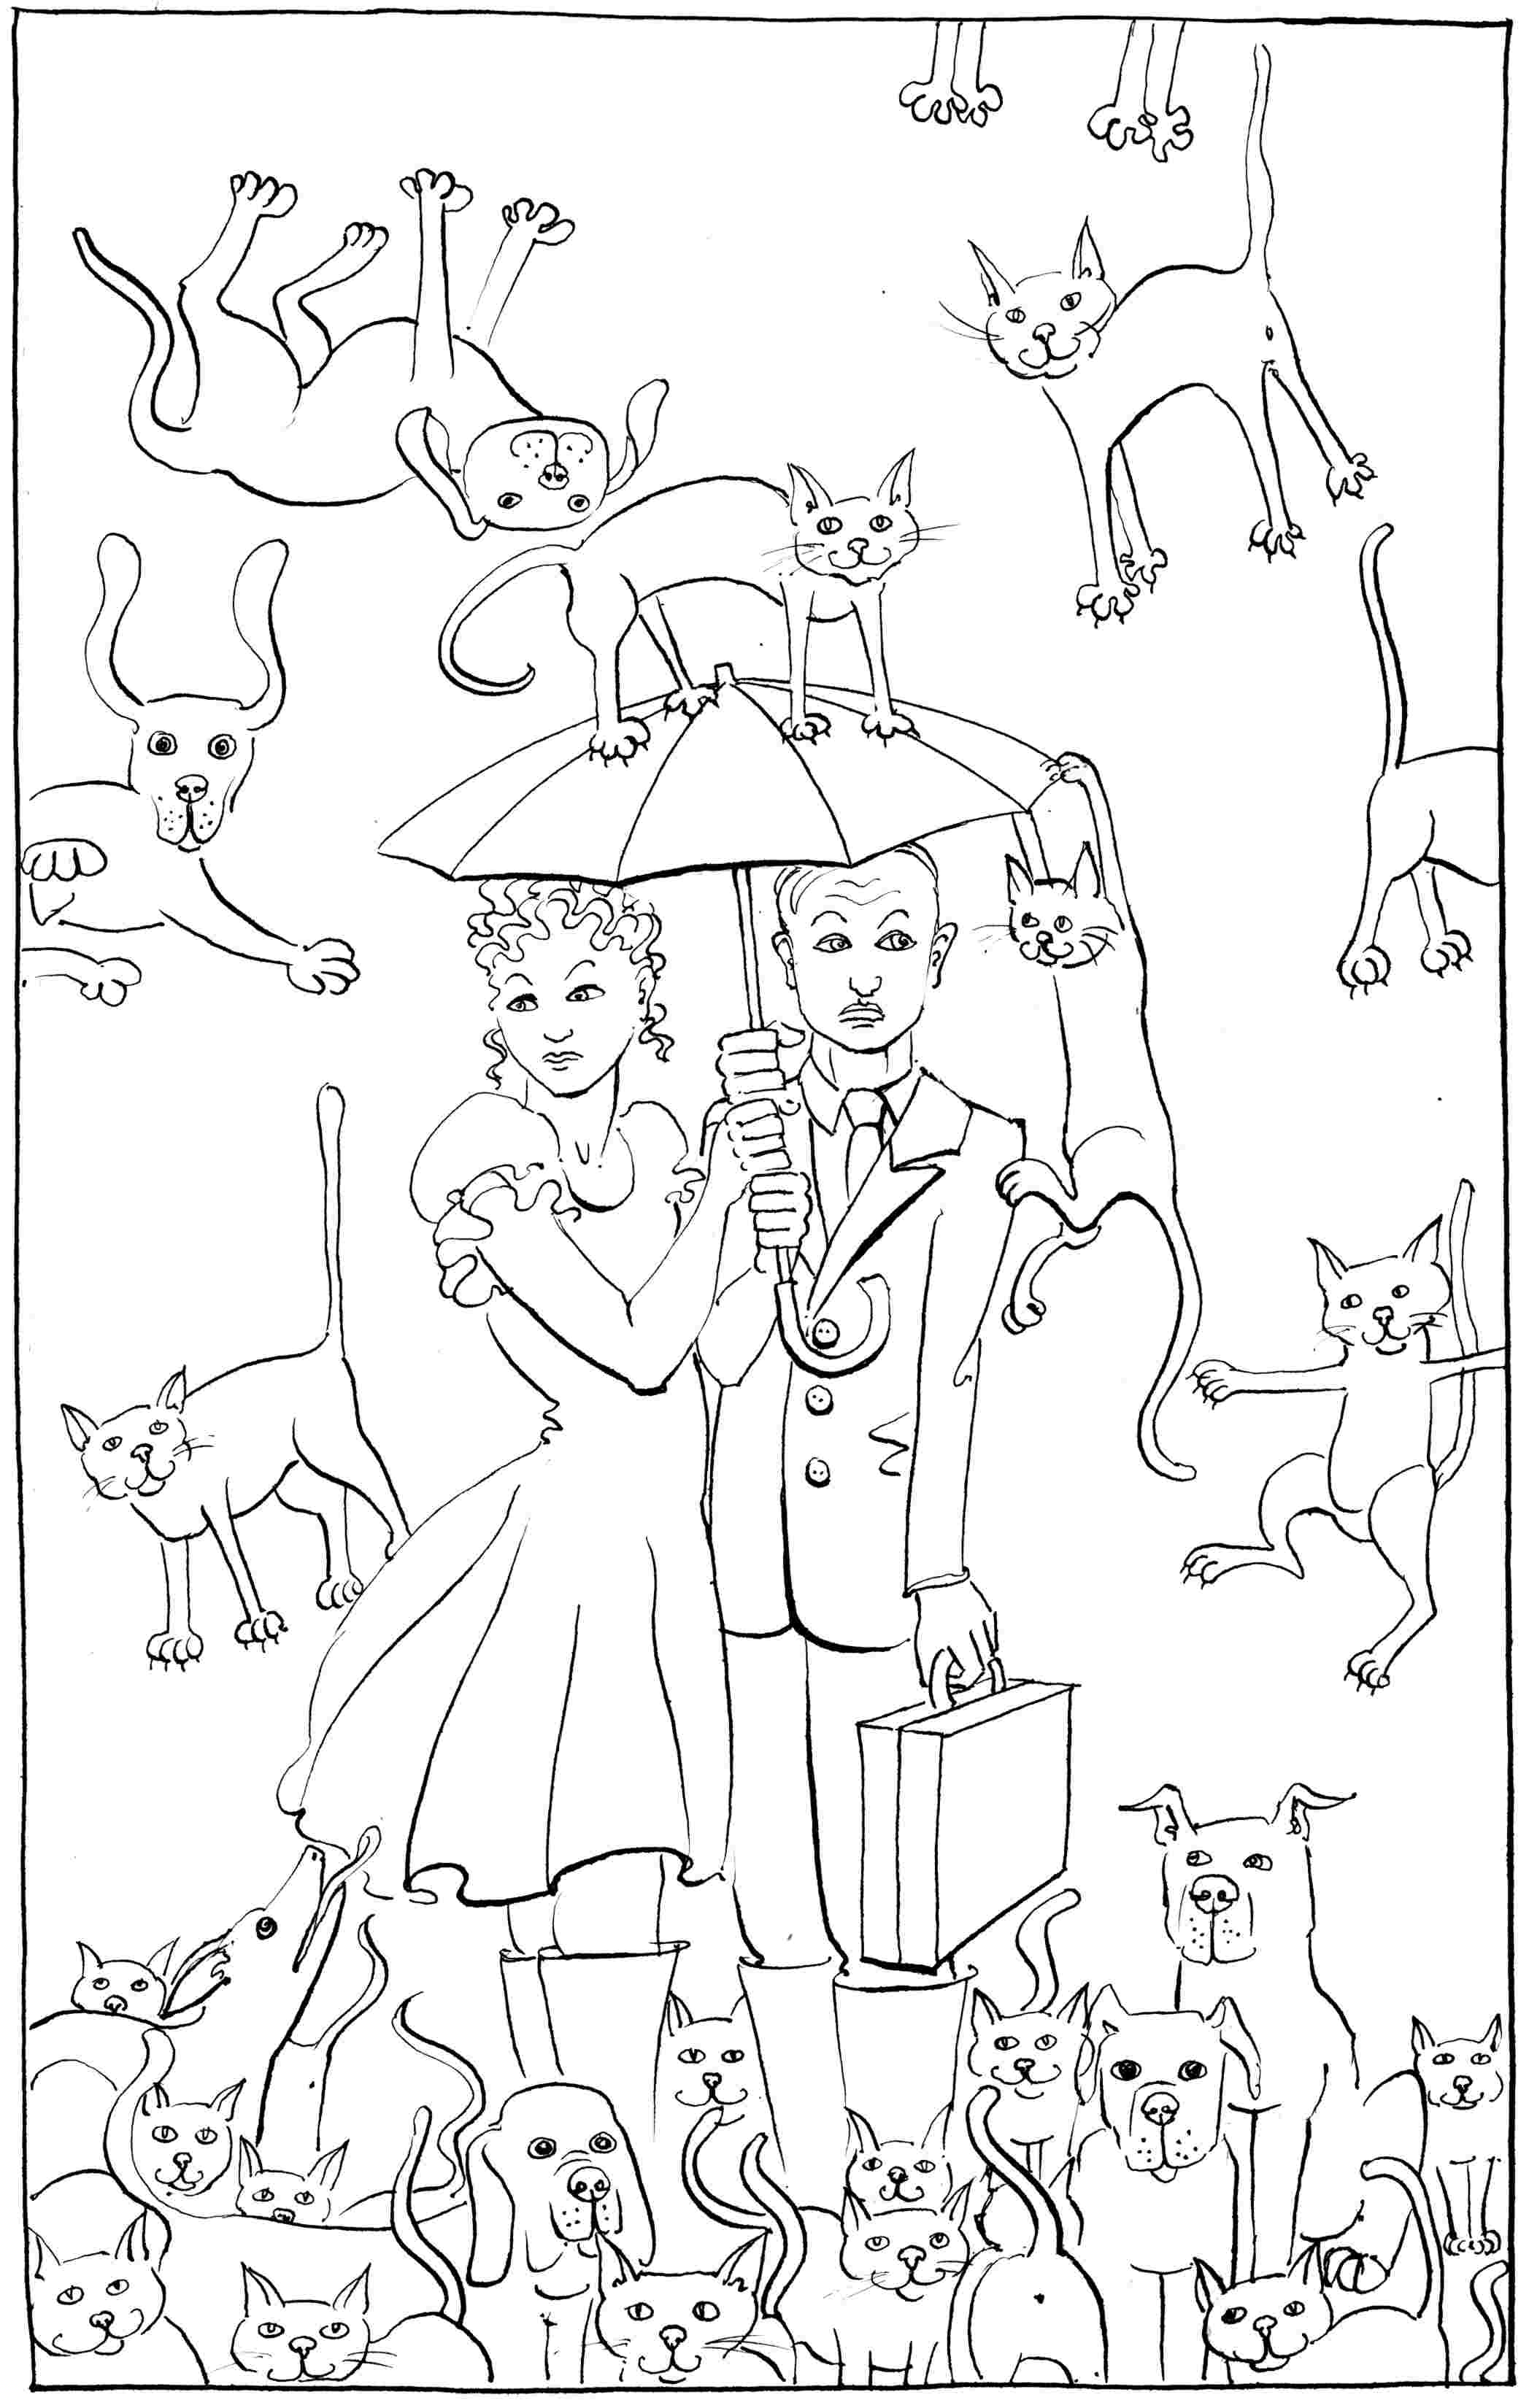 Dogs And Cats Drawing At Getdrawings